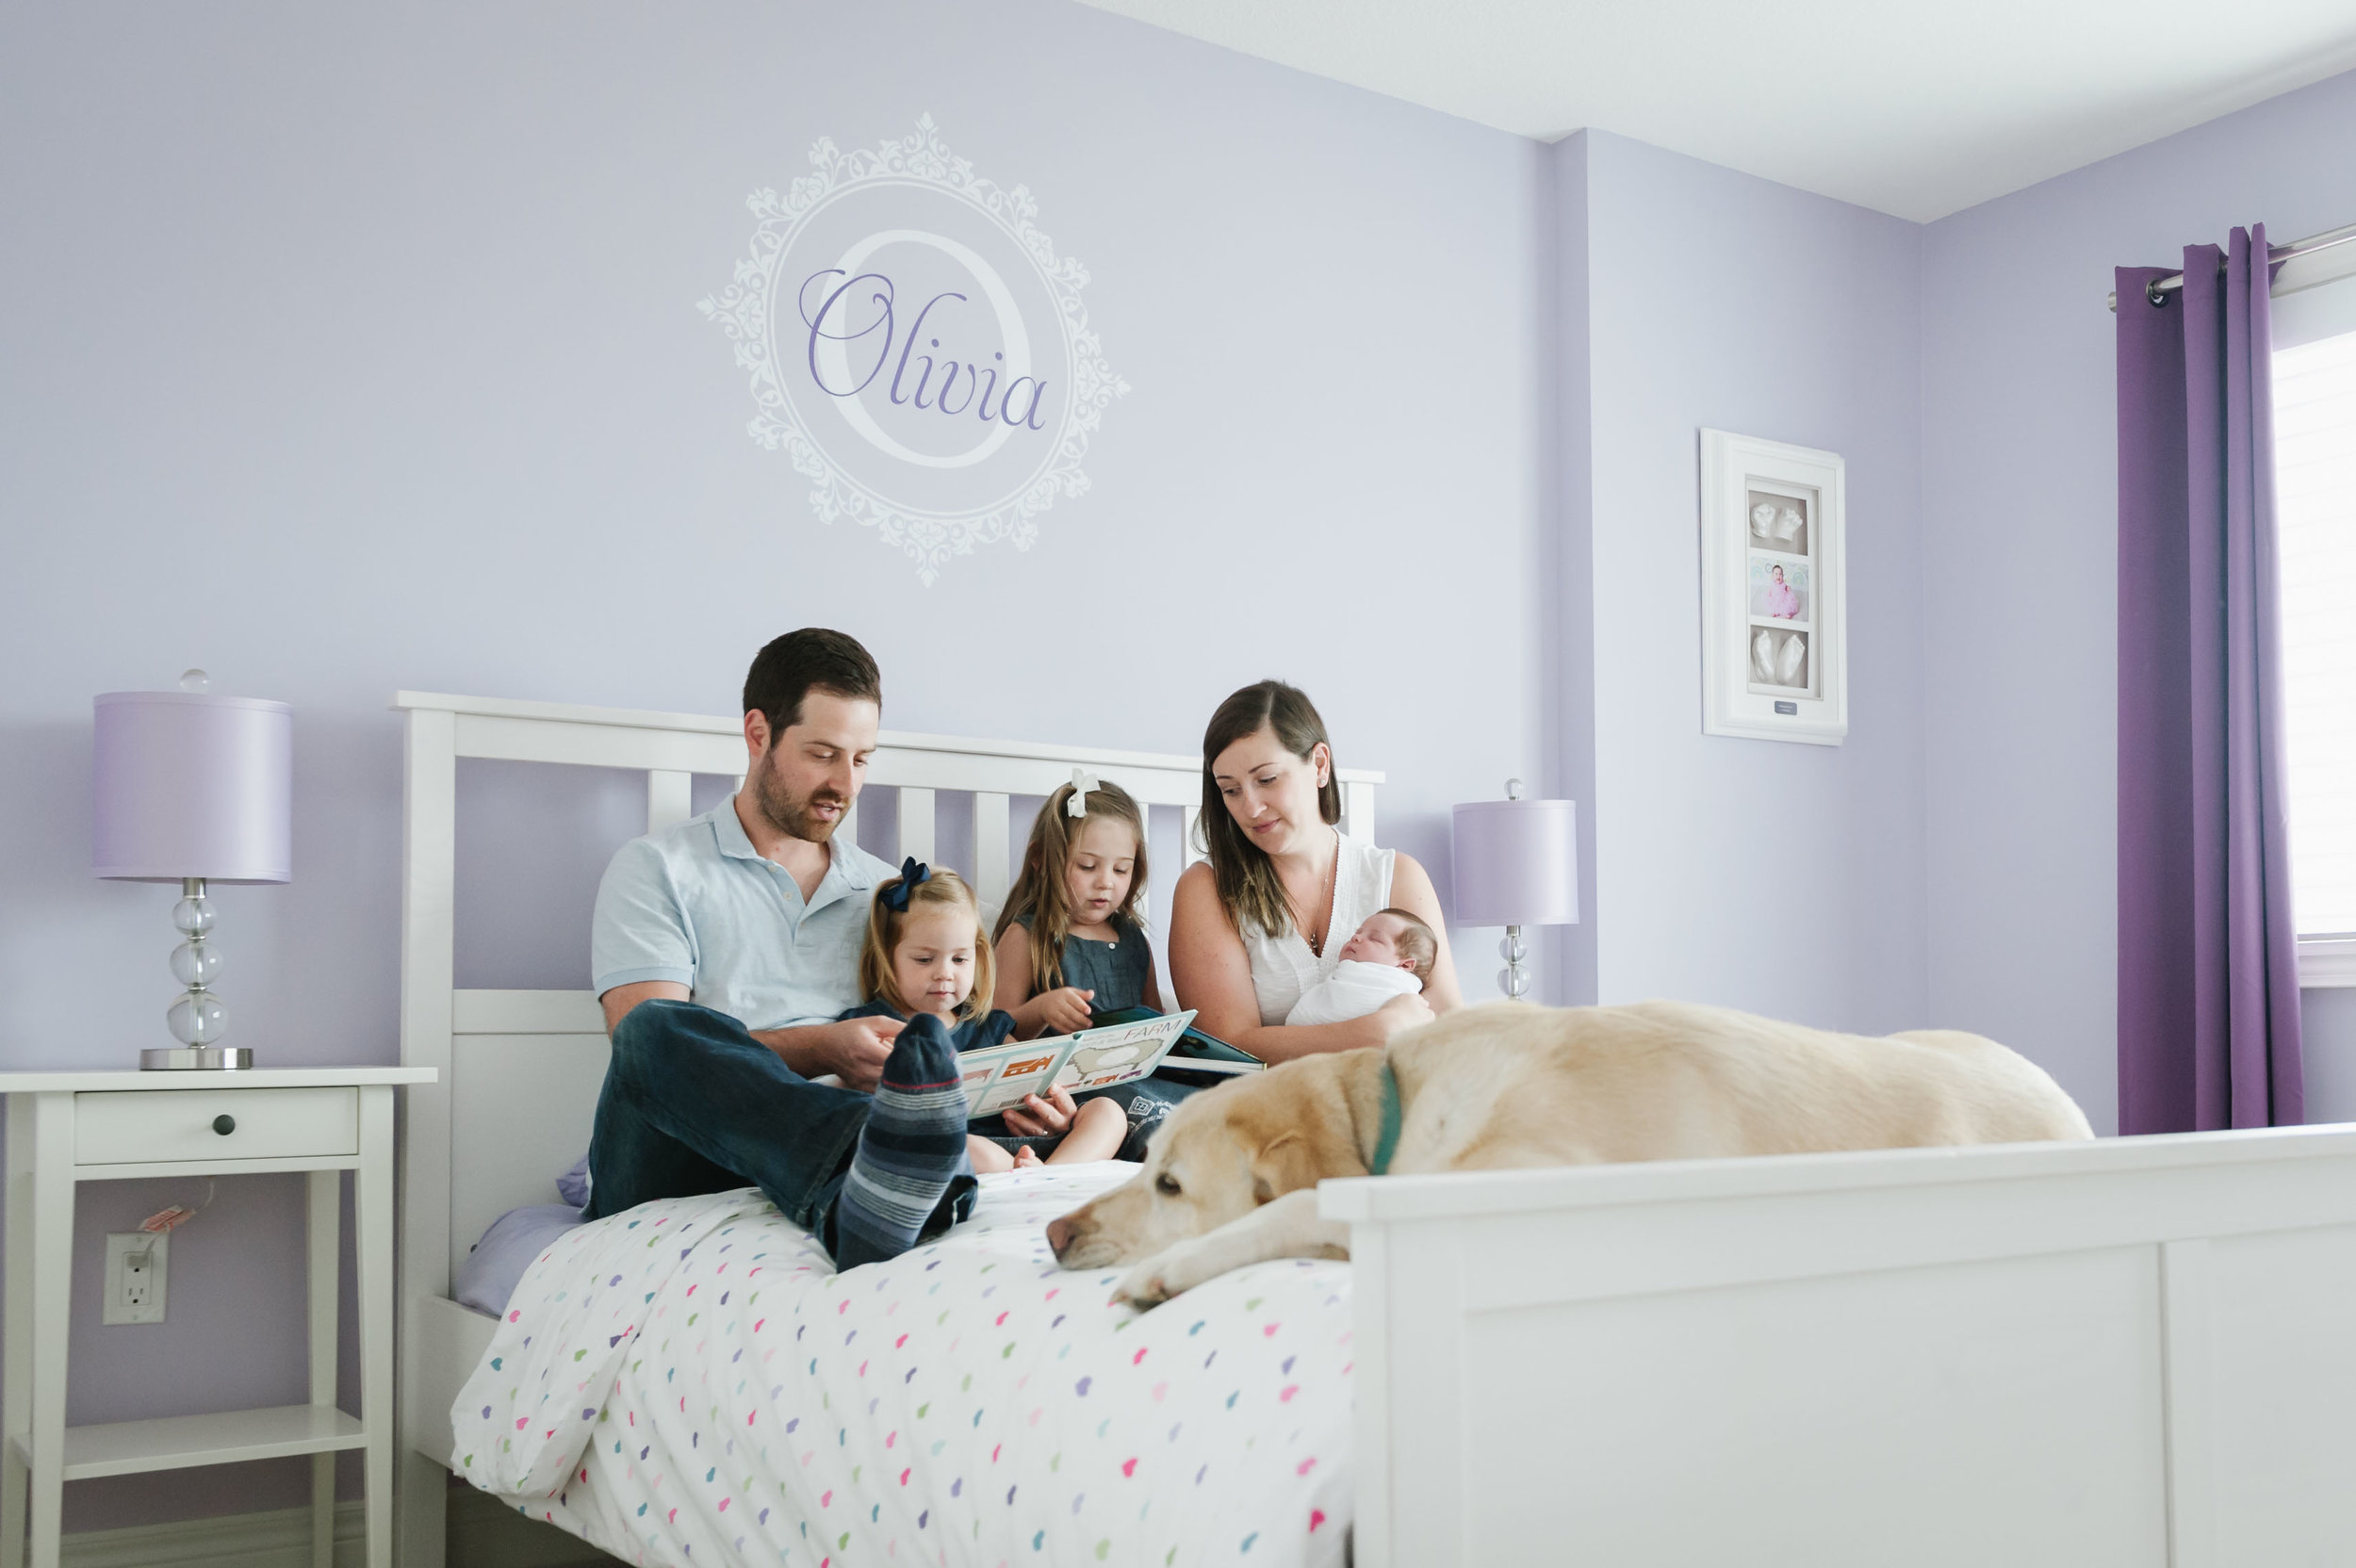 family reading stories on bed with dogs and new baby girl - niagara lifestyle newborn photographer